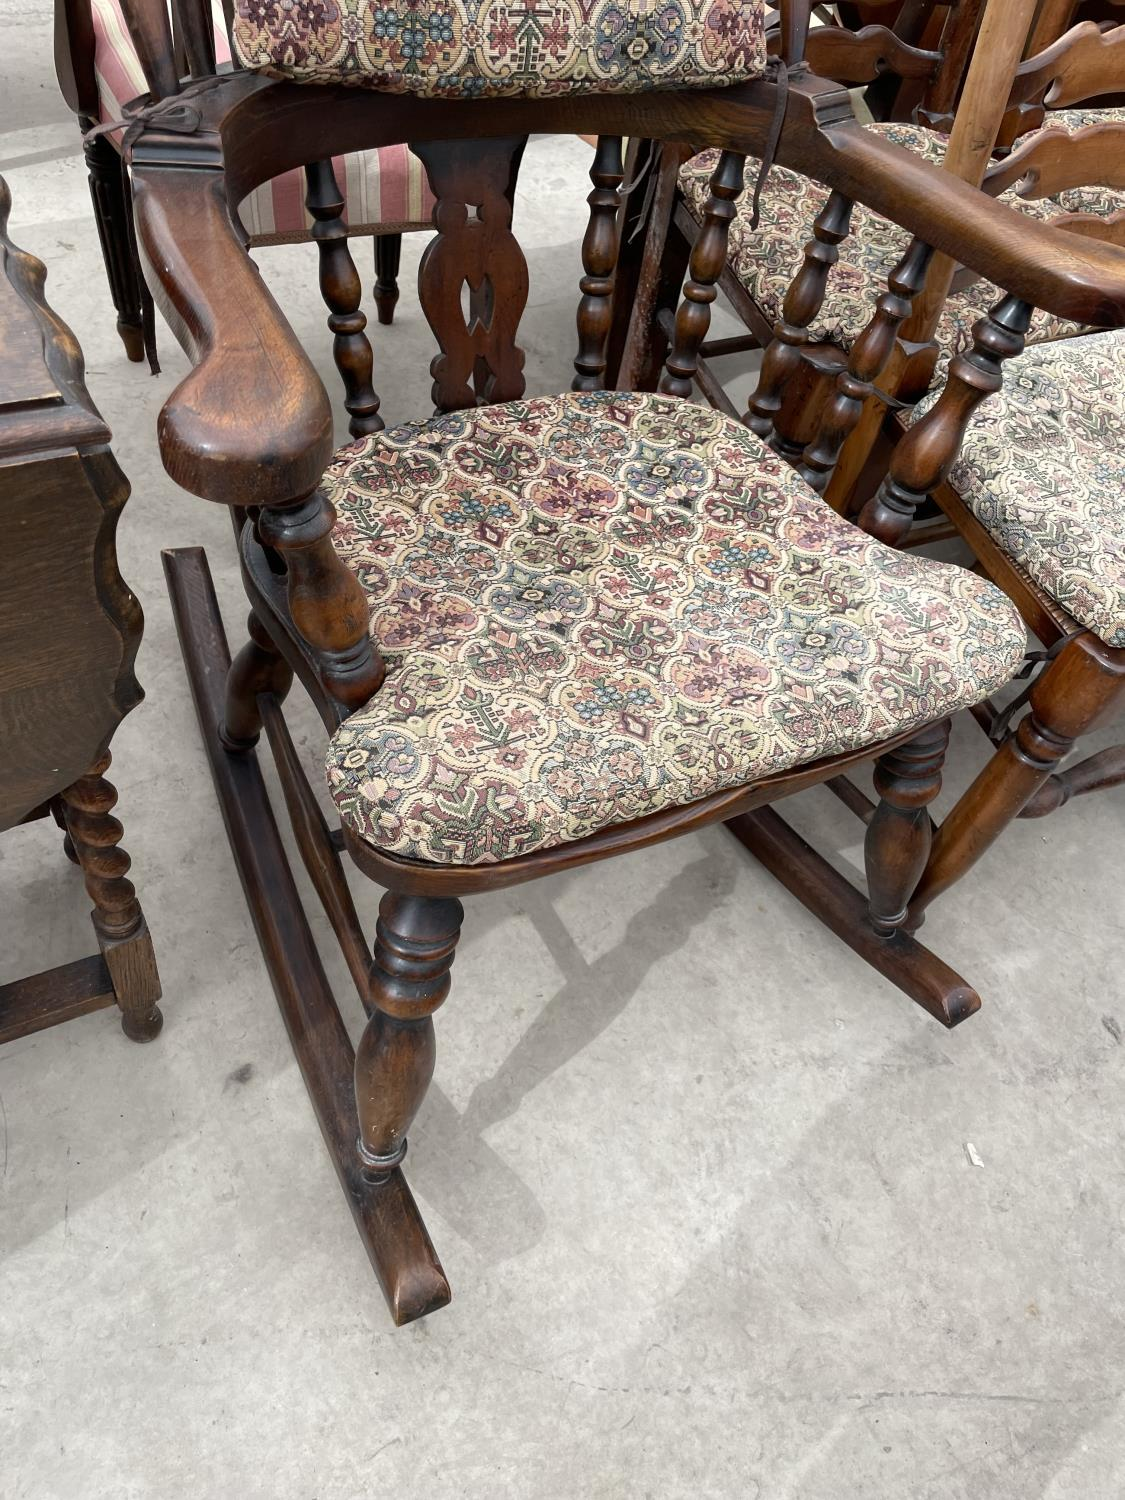 A REPRODUCTION WINDSOR ROCKING CHAIR WITH TURNED UPRIGHTS, BEARING LABEL 'R.E.FORSTER, WARRINGTON' - Image 3 of 5